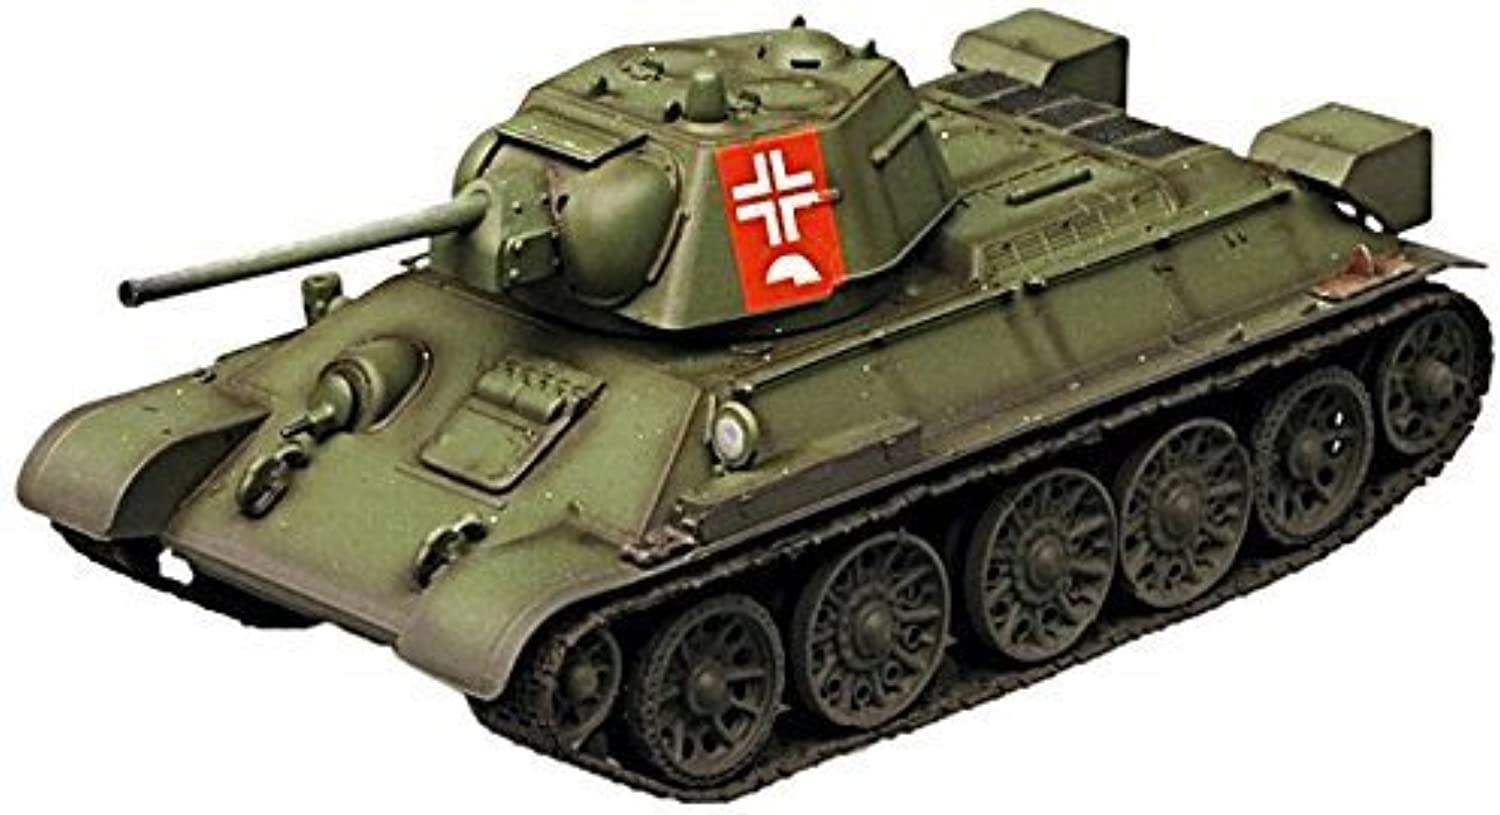 ventas calientes Easy Model 1 72 Scale  T-34 T-34 T-34 76 Russian Army  Model Kit by Easy Model  más orden